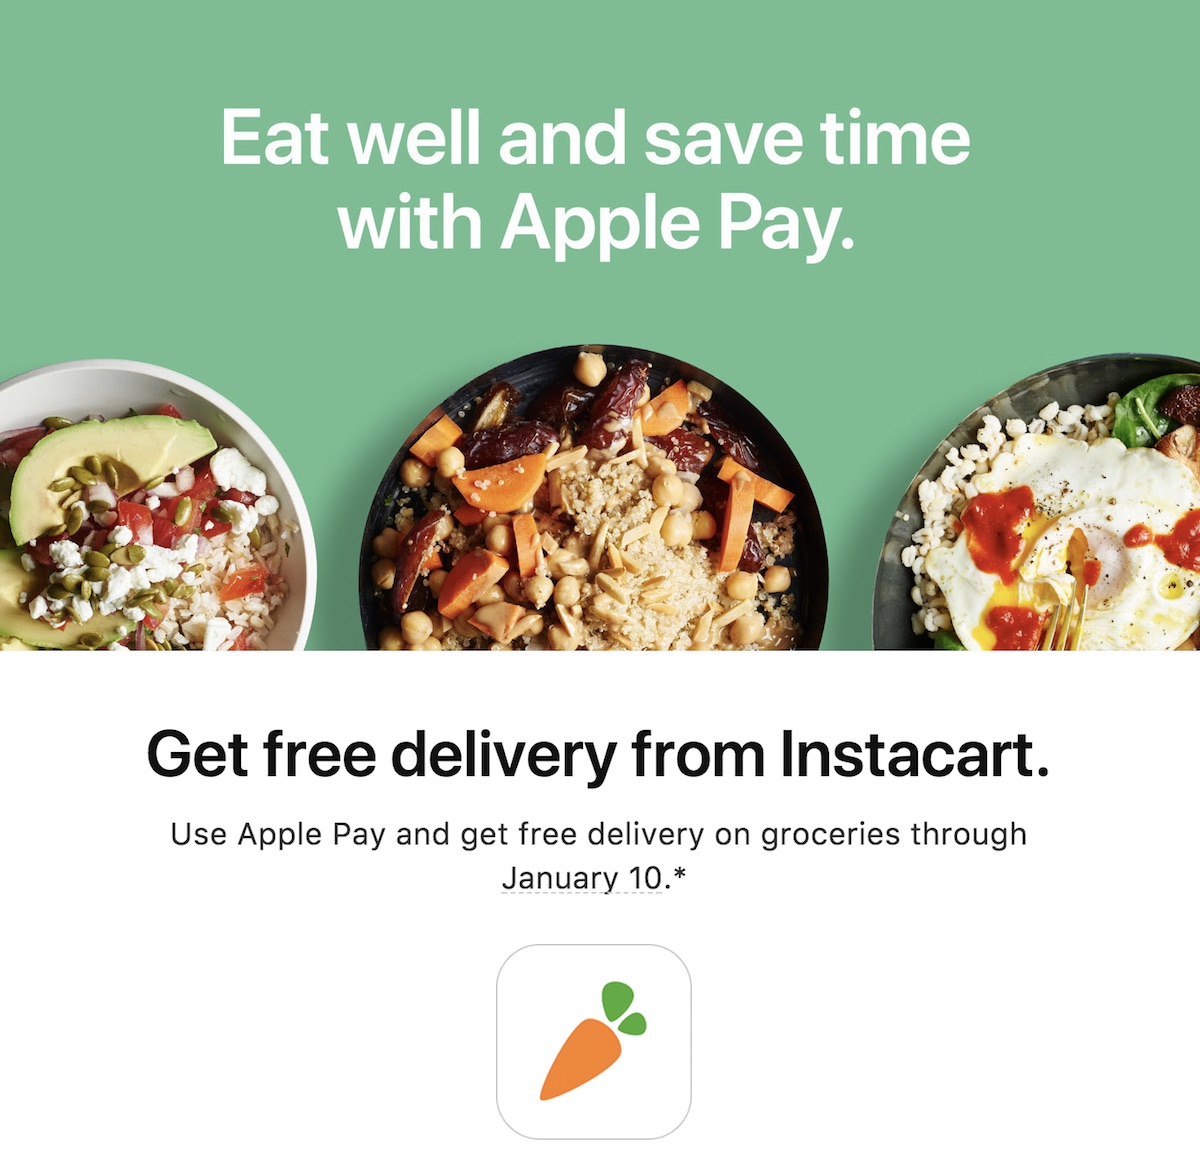 Apple Pay Promo Offers Free Delivery From Instacart Through January